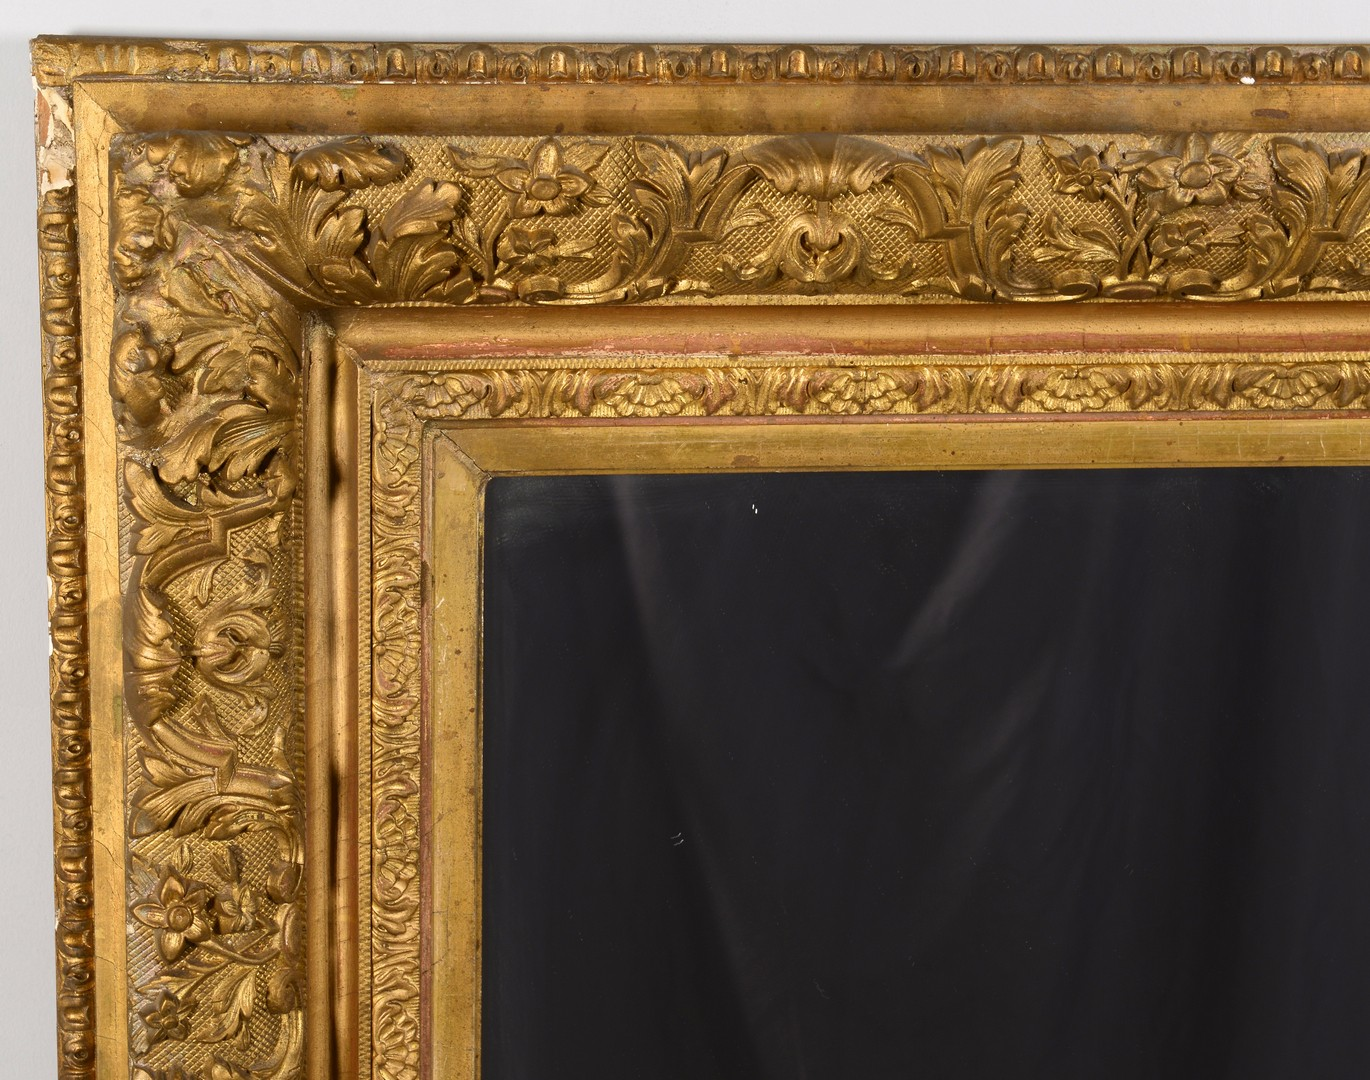 Lot 3832462: Large 19th Century Giltwood Mirror or Looking Glass